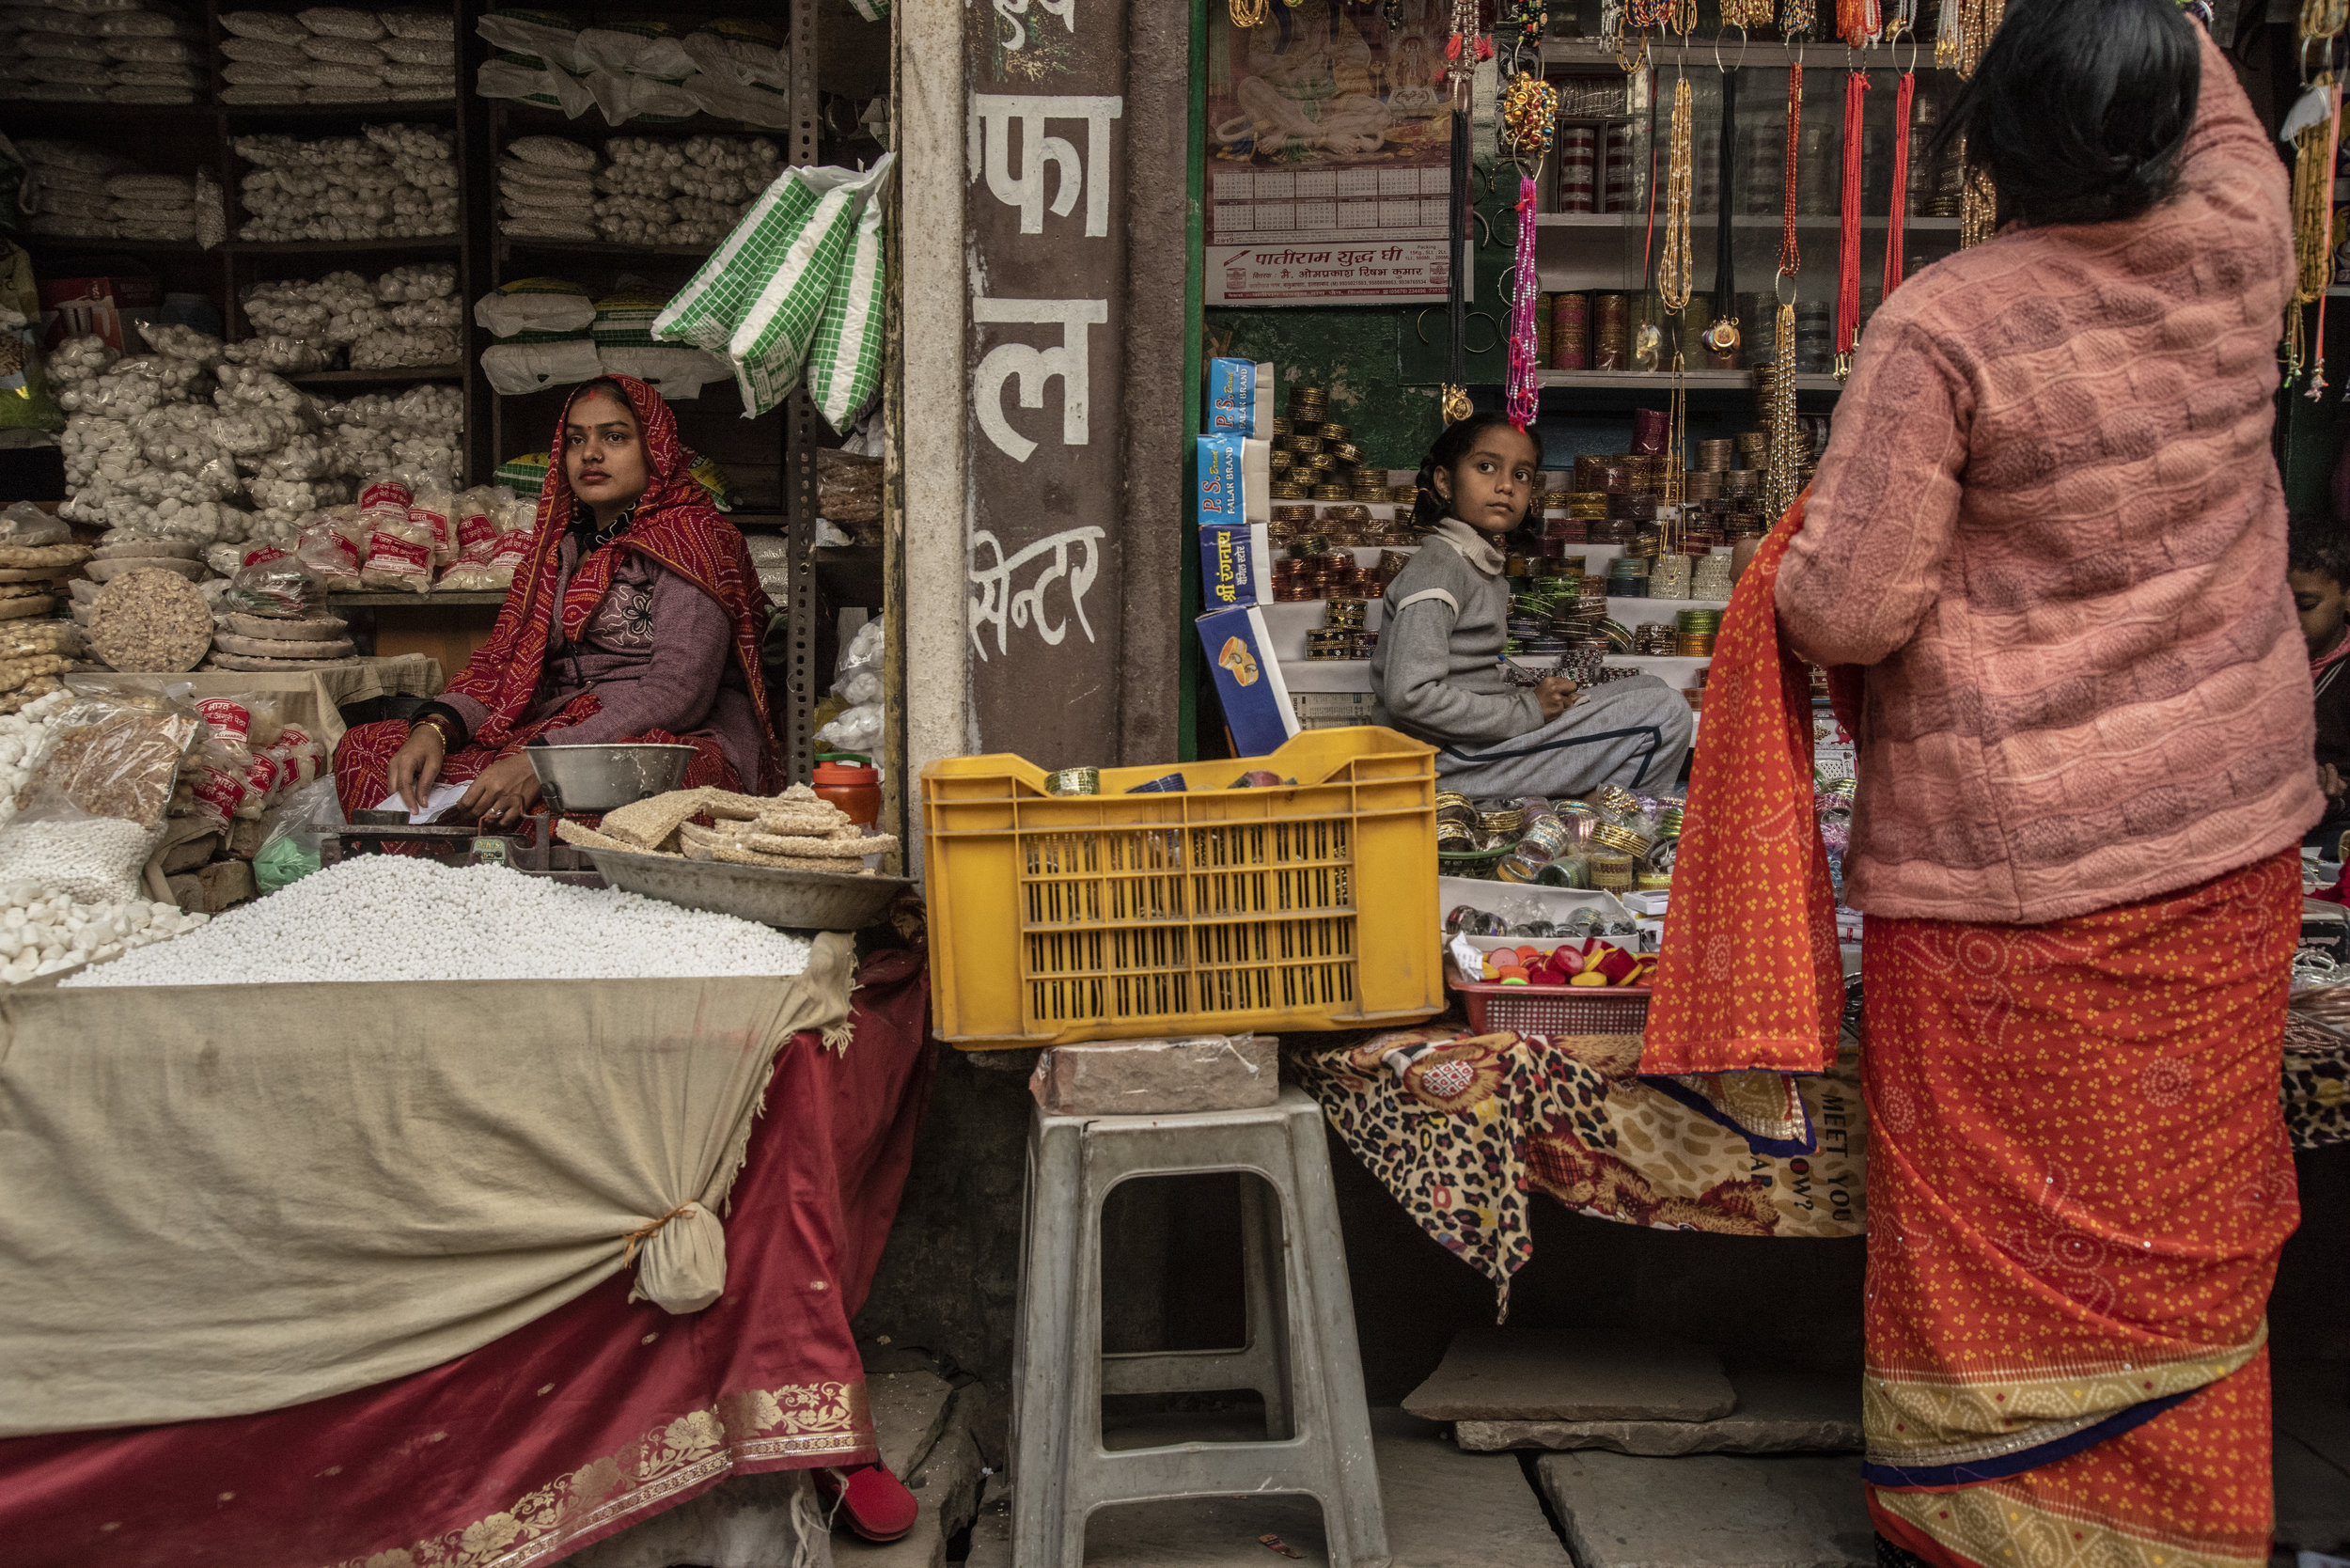 A woman and a young girl in a market in Allahabad, though divided, share the same expression